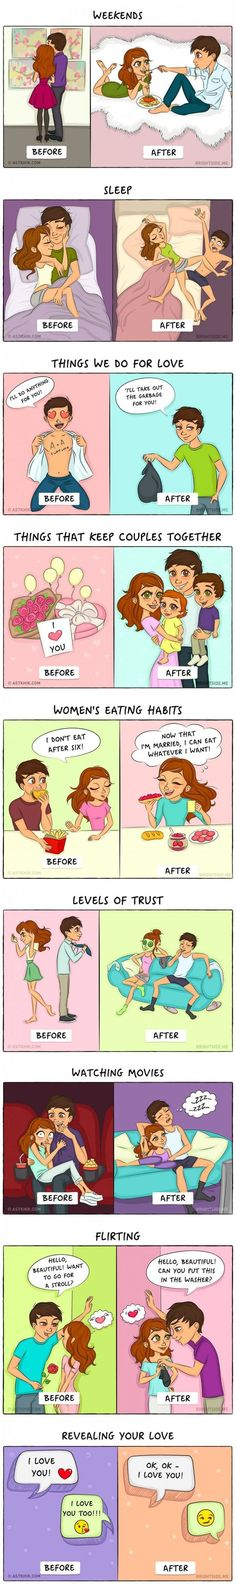 Dating Vs Marriage #lol #haha #funny (Best Boyfriend This Girl Has The)